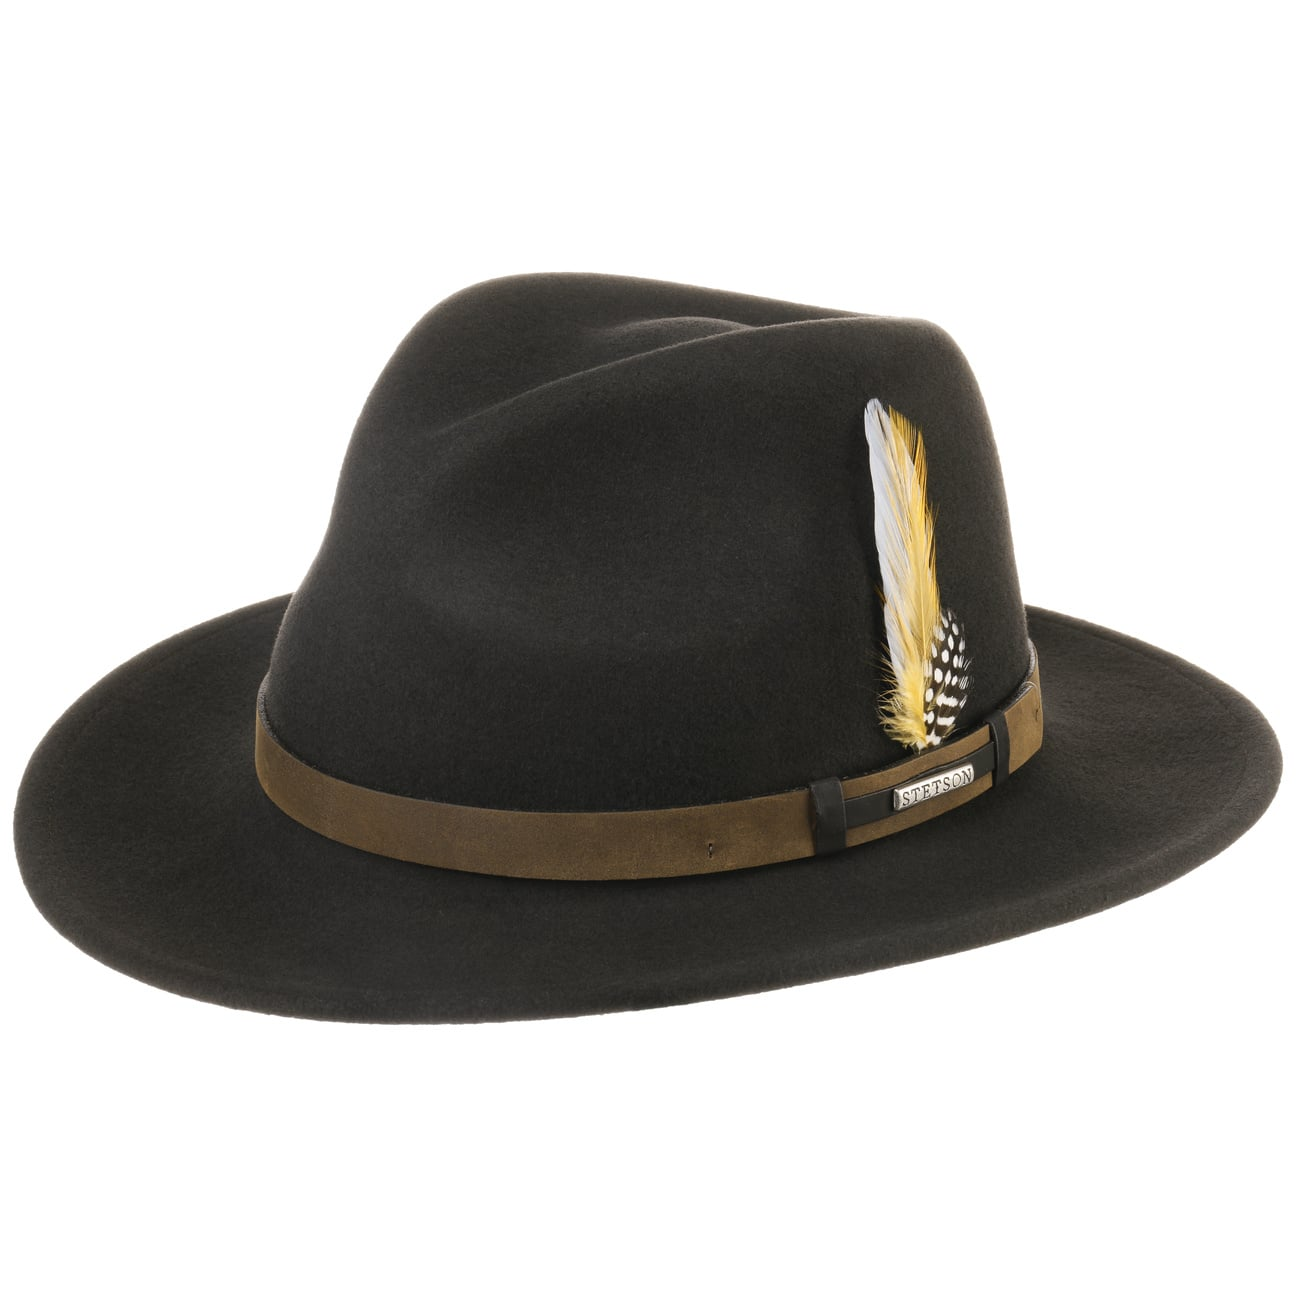 Since Hats Unlimited has been selling a huge variety of hats and caps for men, women, and children in our hat stores and online. Over + styles and growing all the time!